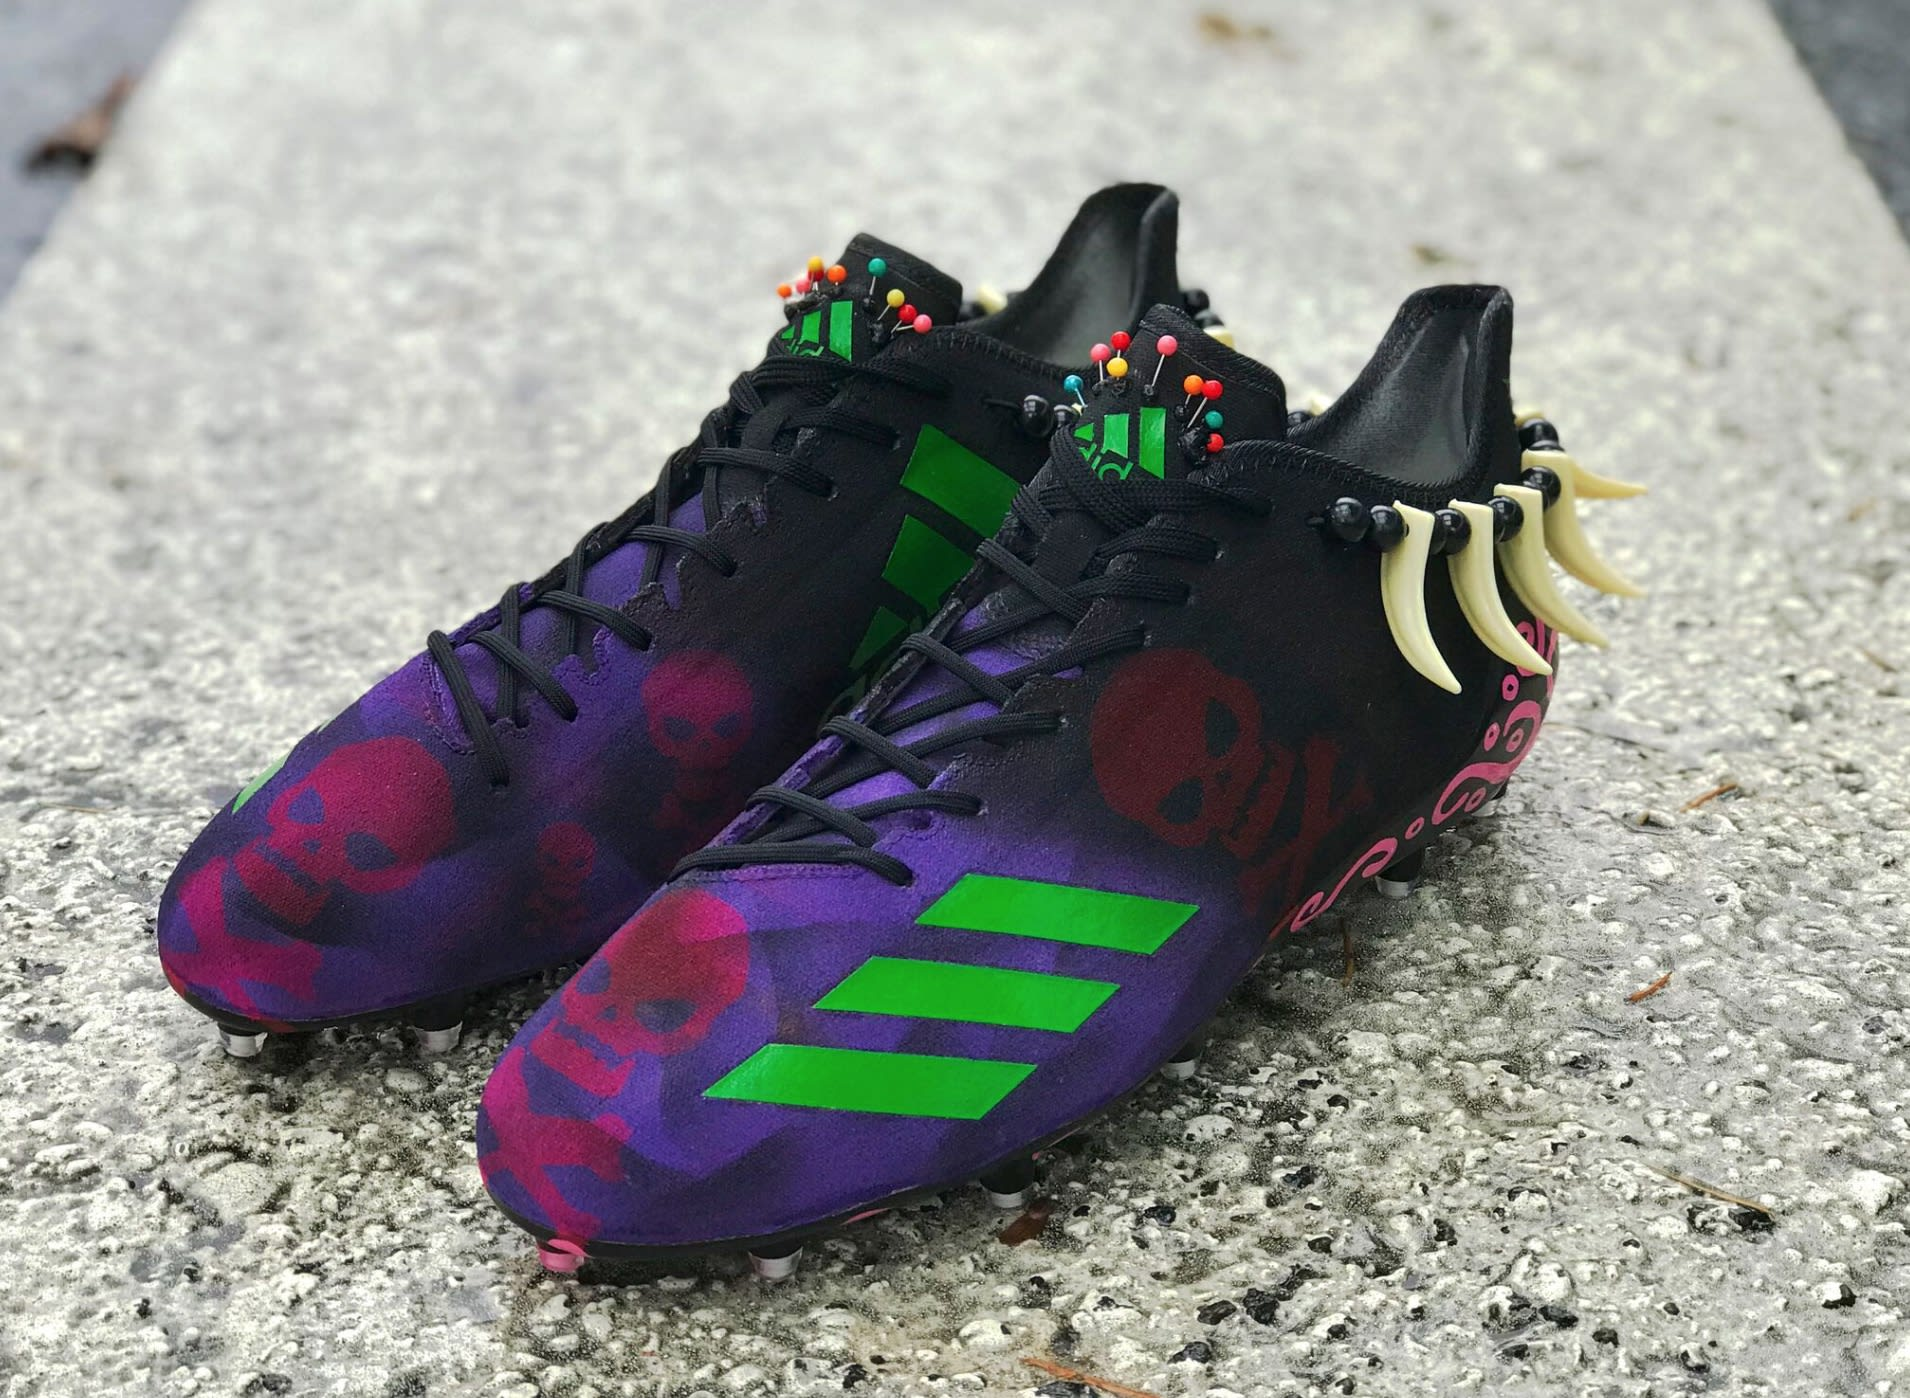 Adidas cleats customize Torrance bakery gardena